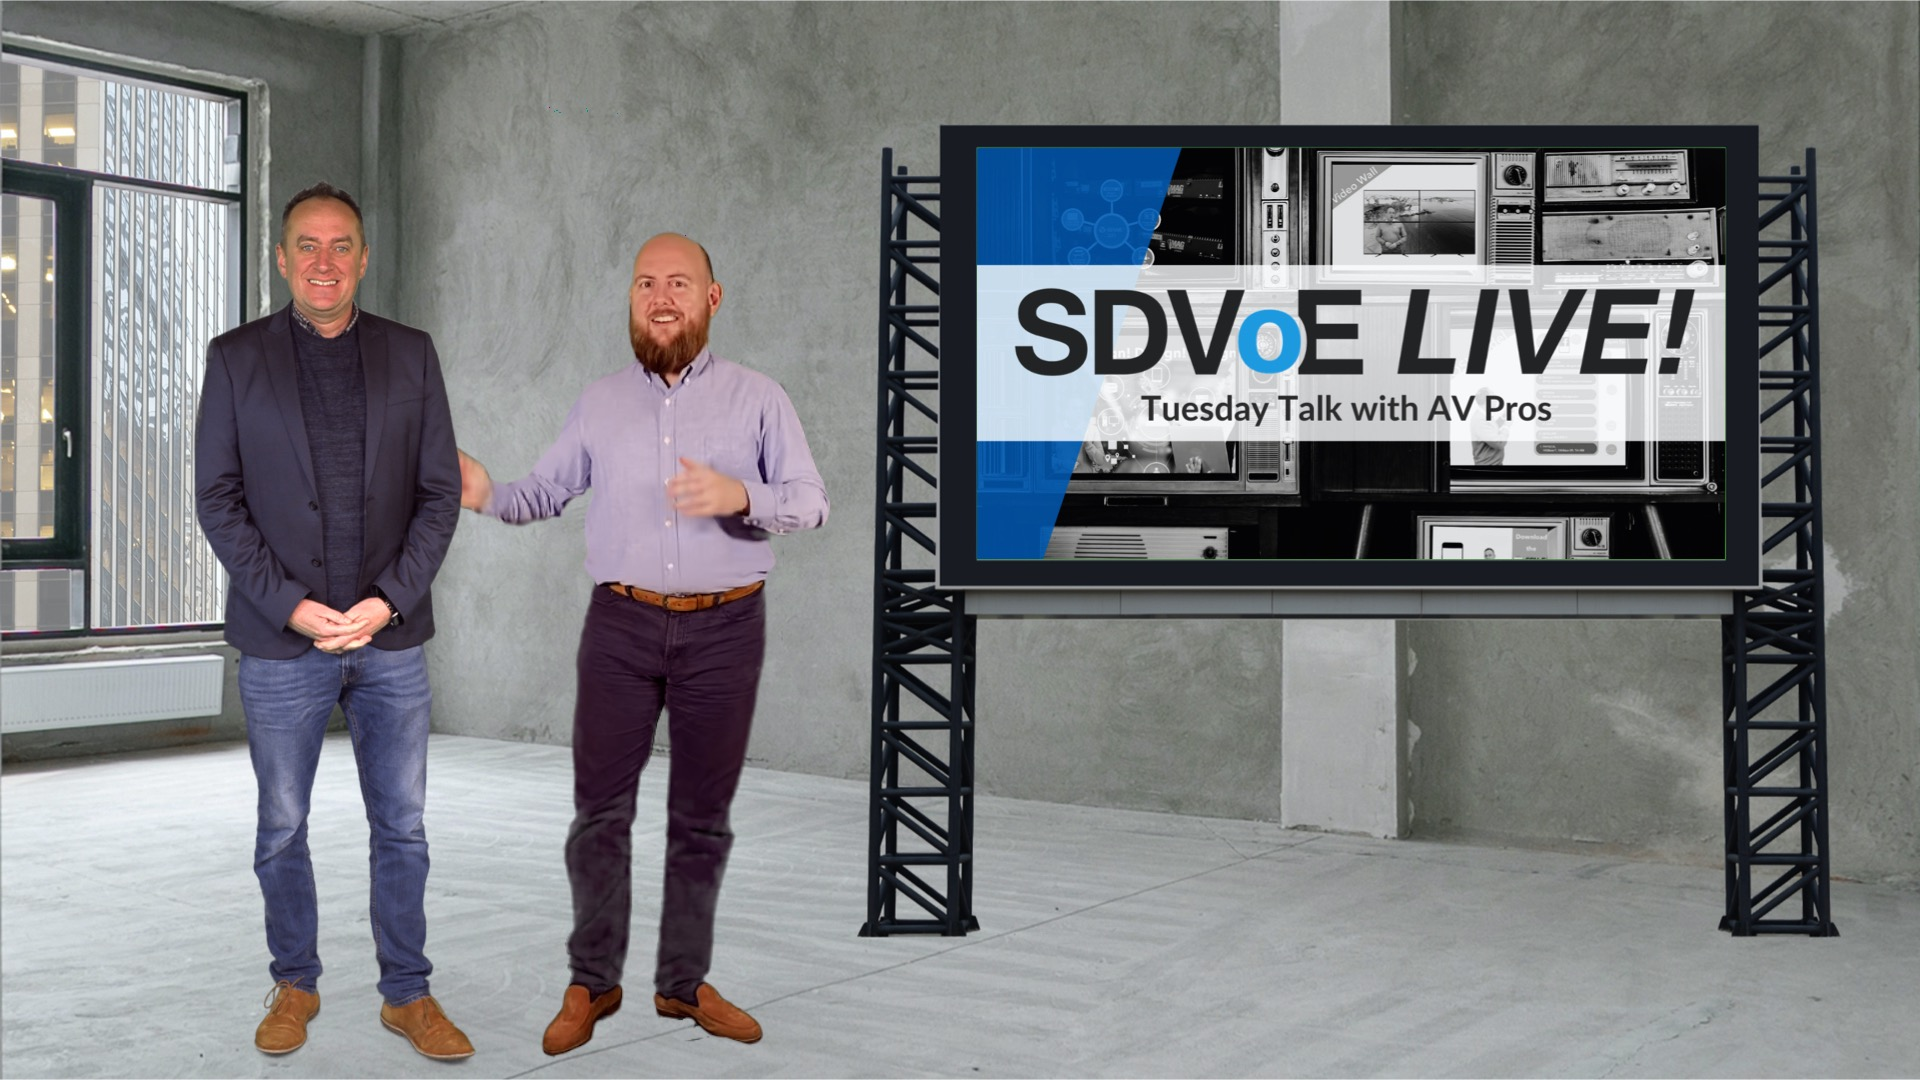 SDVoE LIVE! Episode 7: The Lost Art of AV - How Bright Are You?